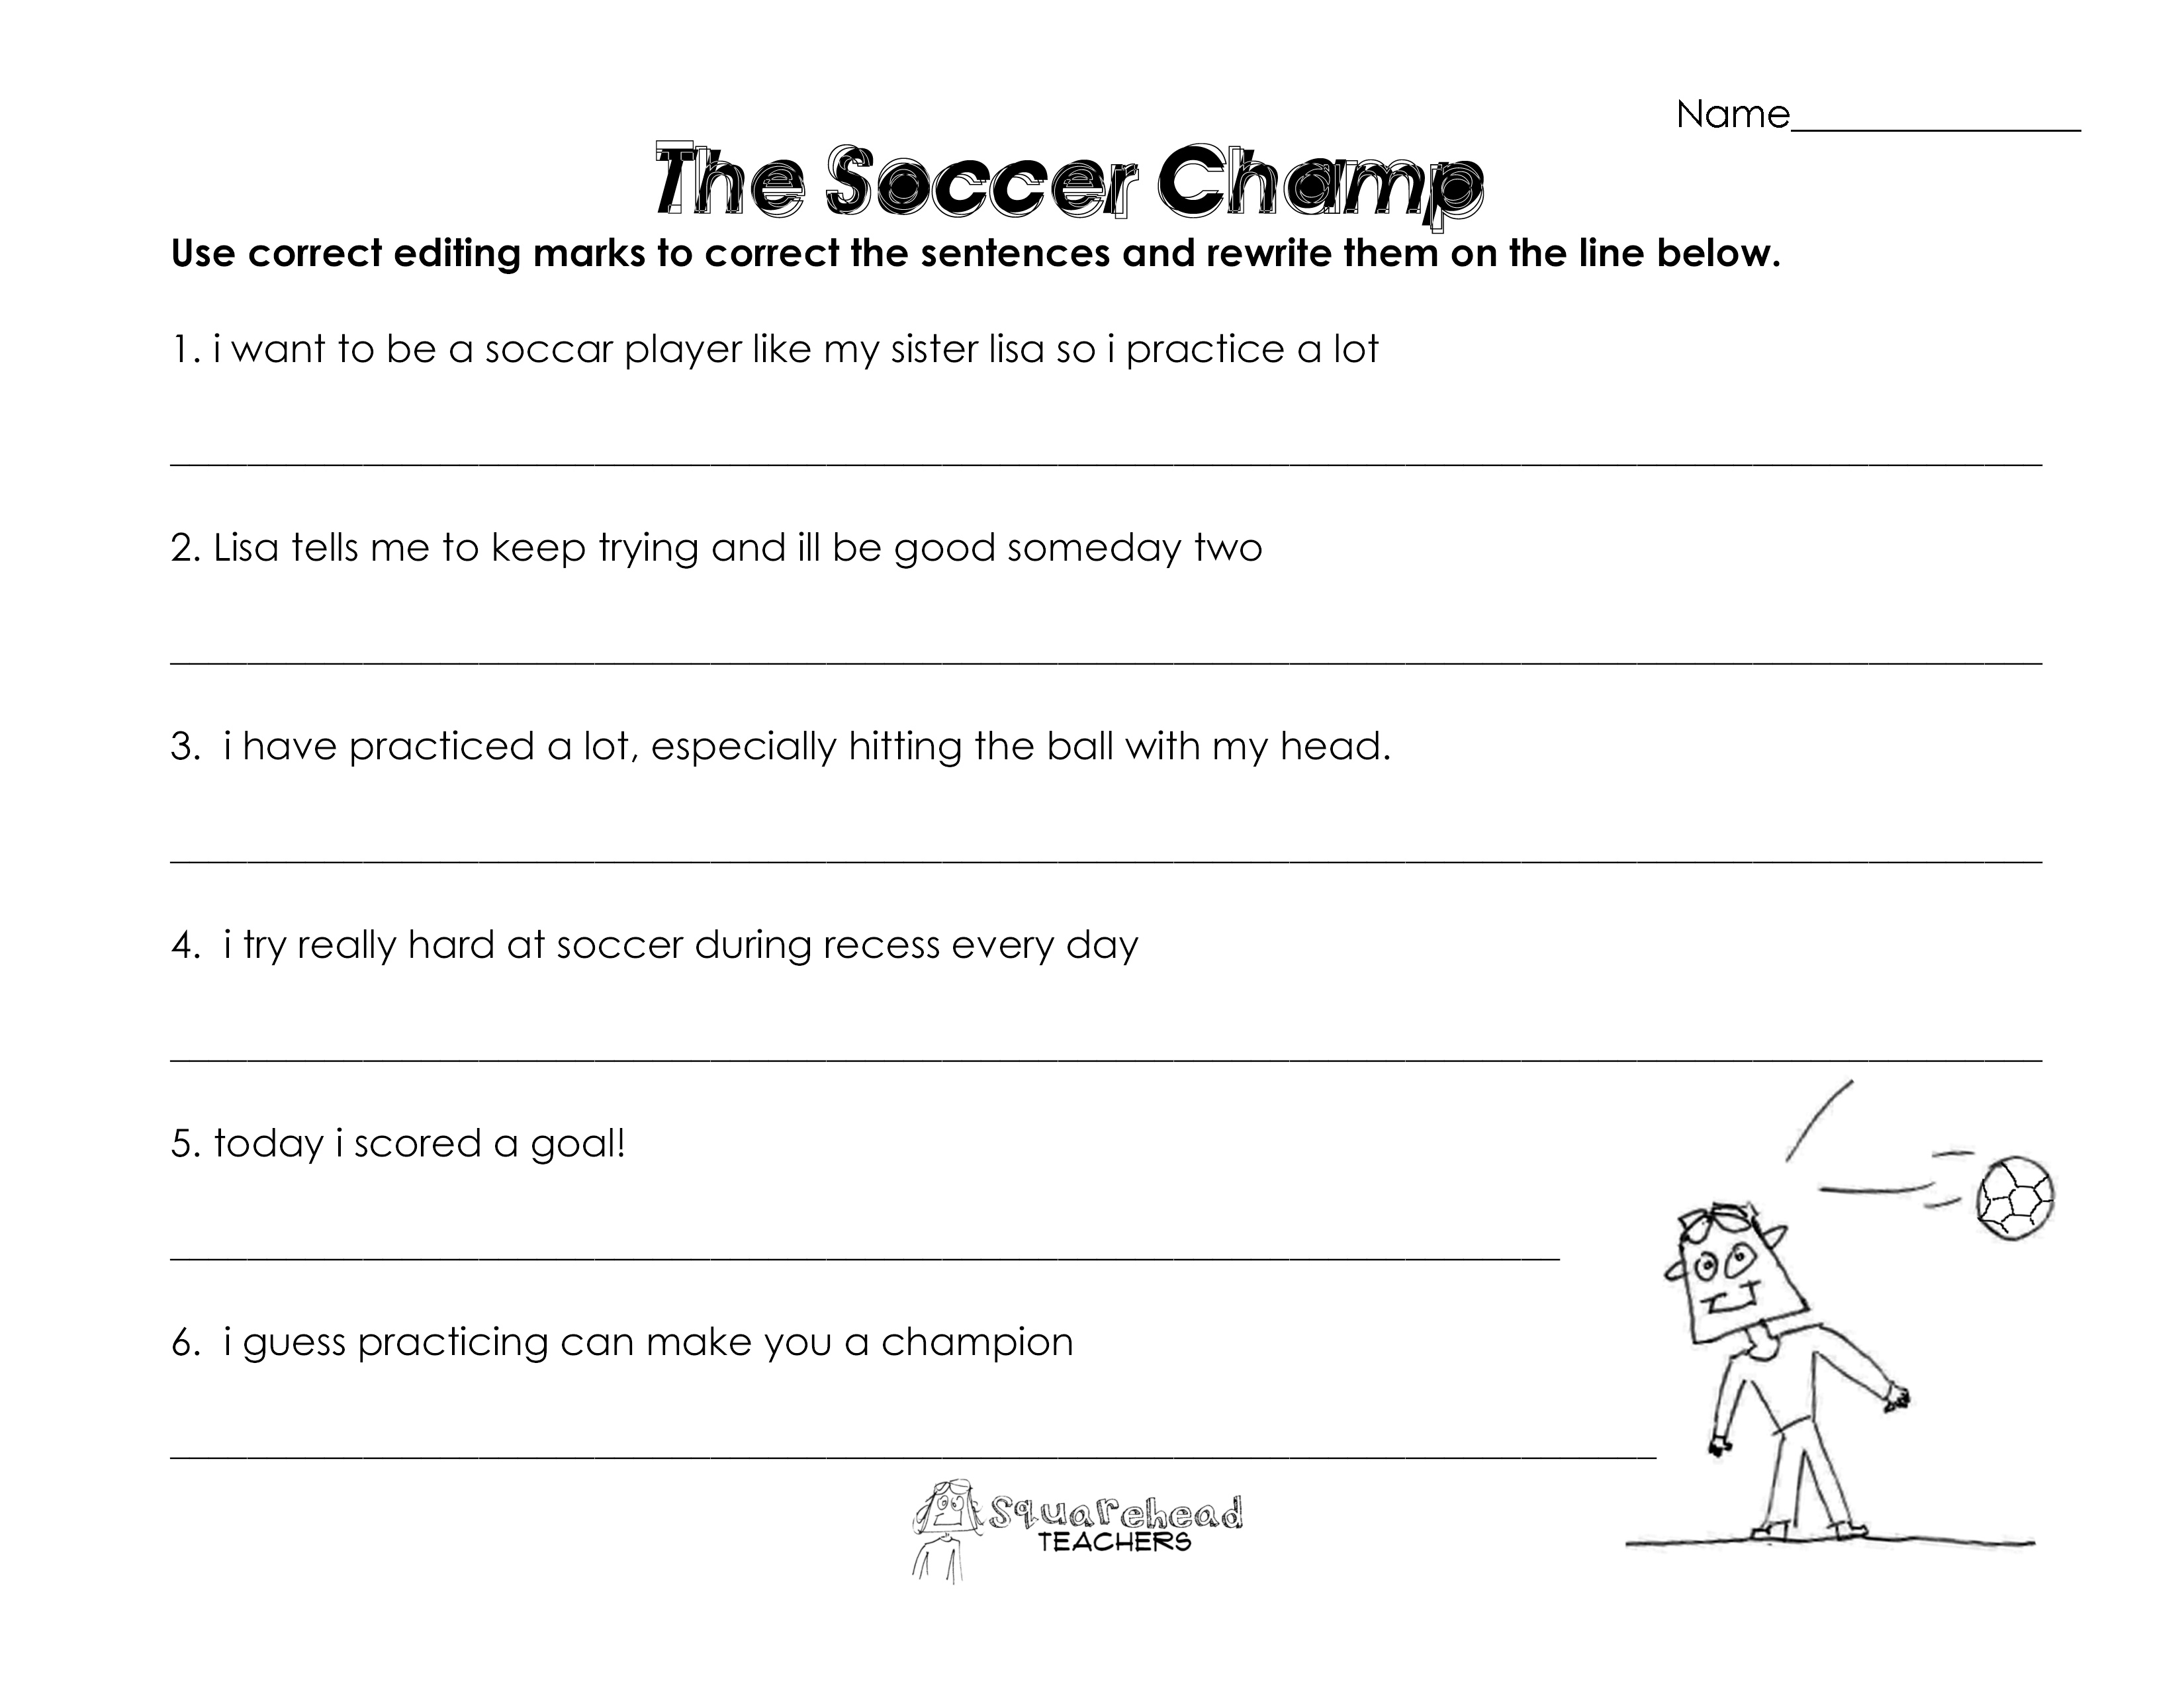 The Soccer Champ Grammar Worksheet